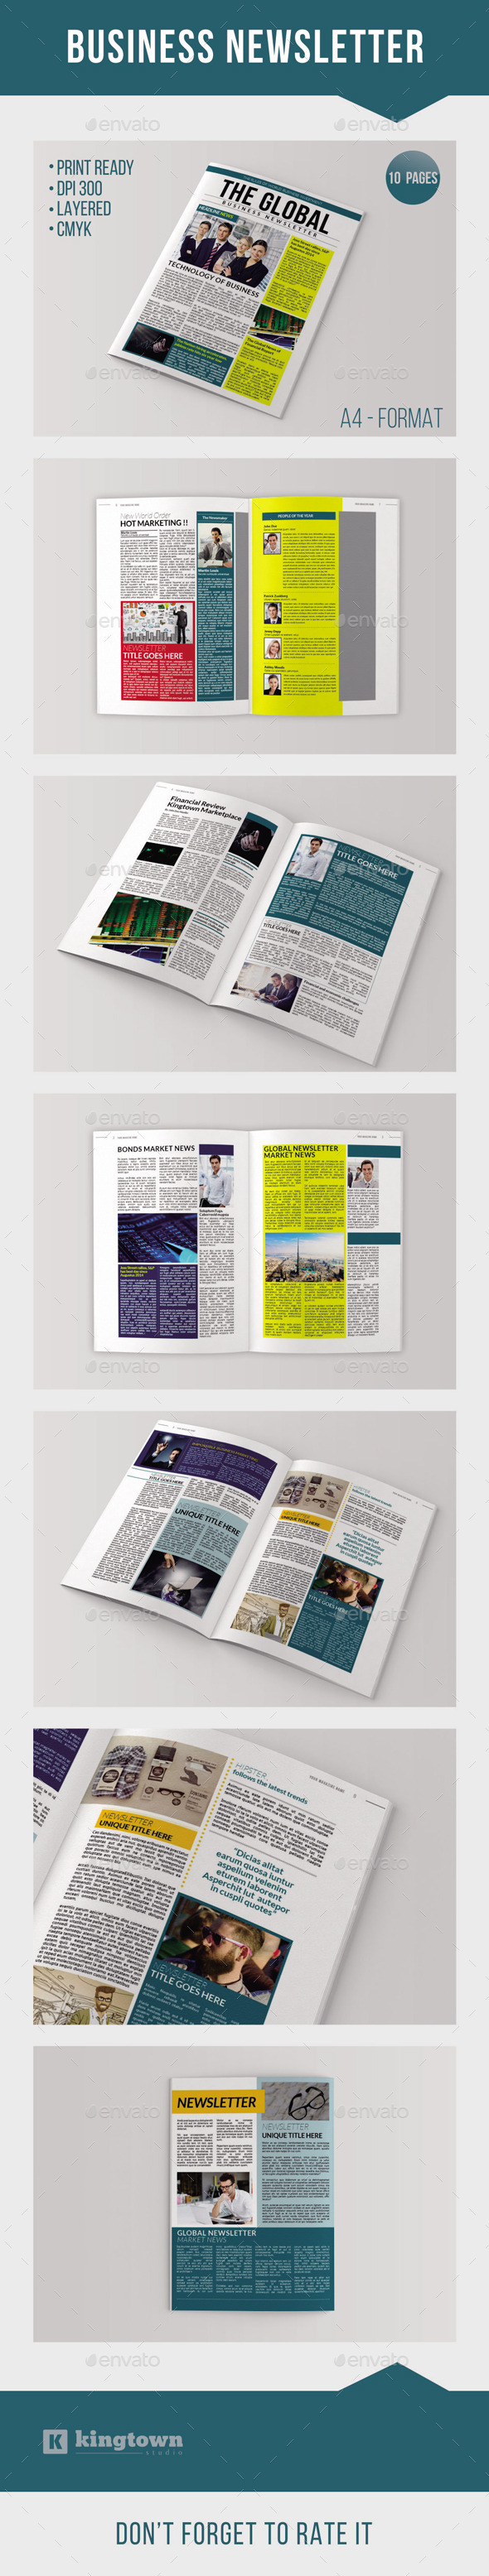 Business Newsletter Vol. 2 - Newsletters Print Templates